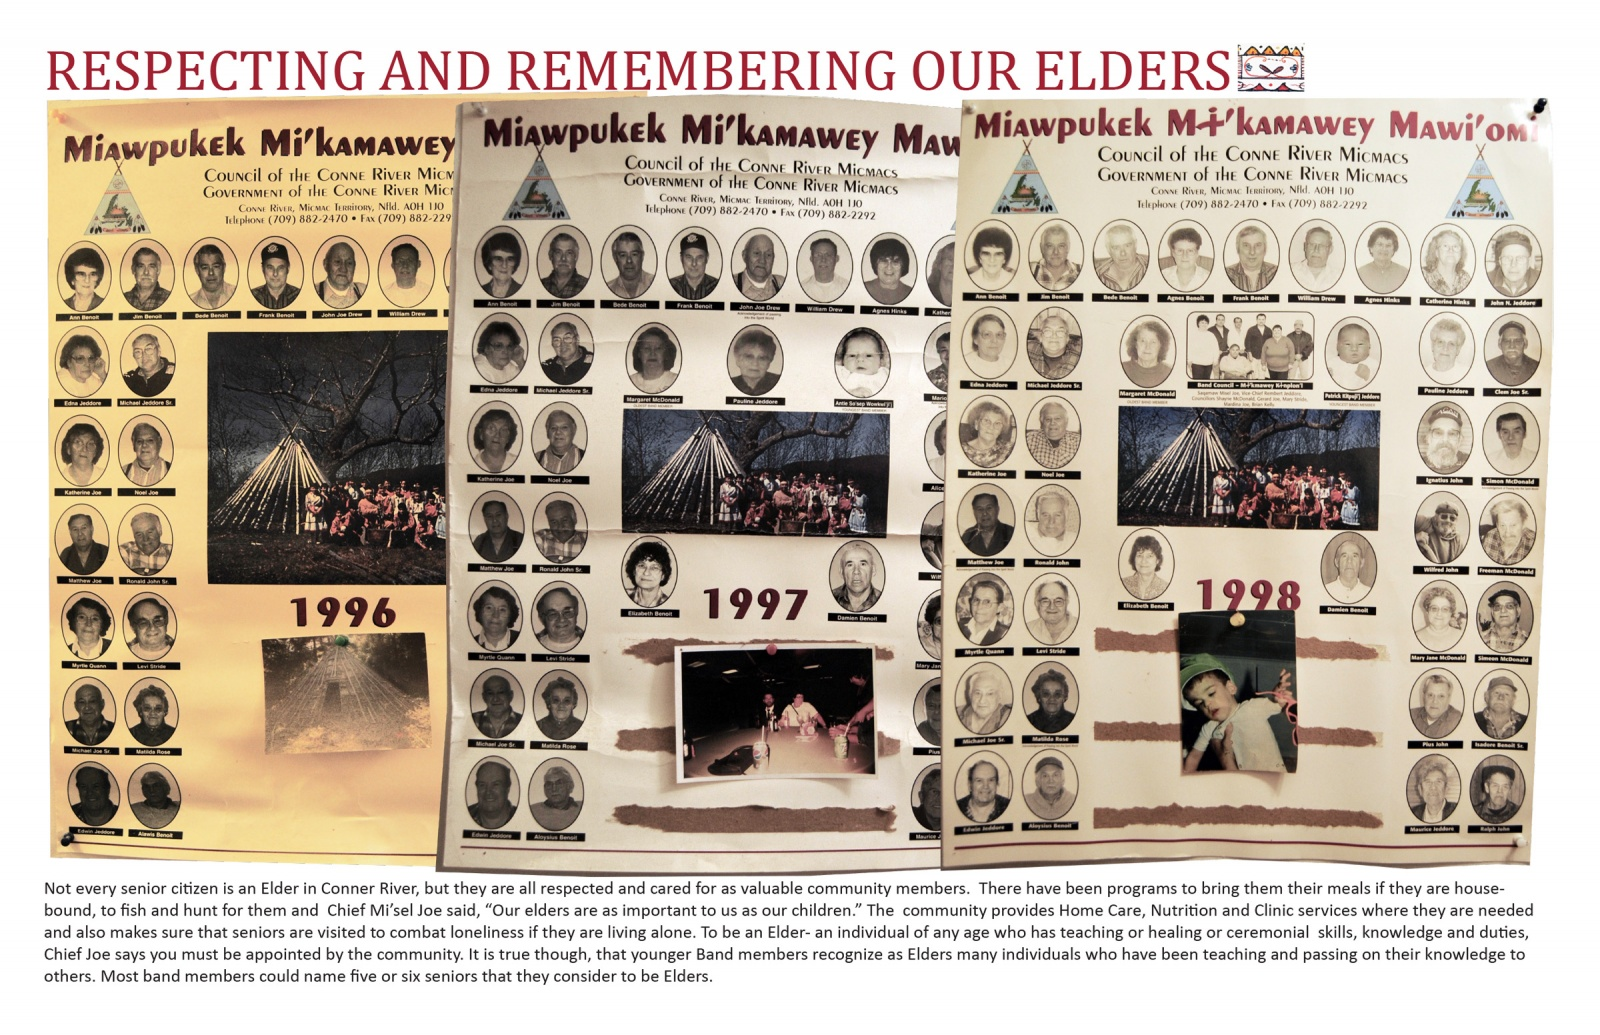 Respecting and Remembering Our Elders